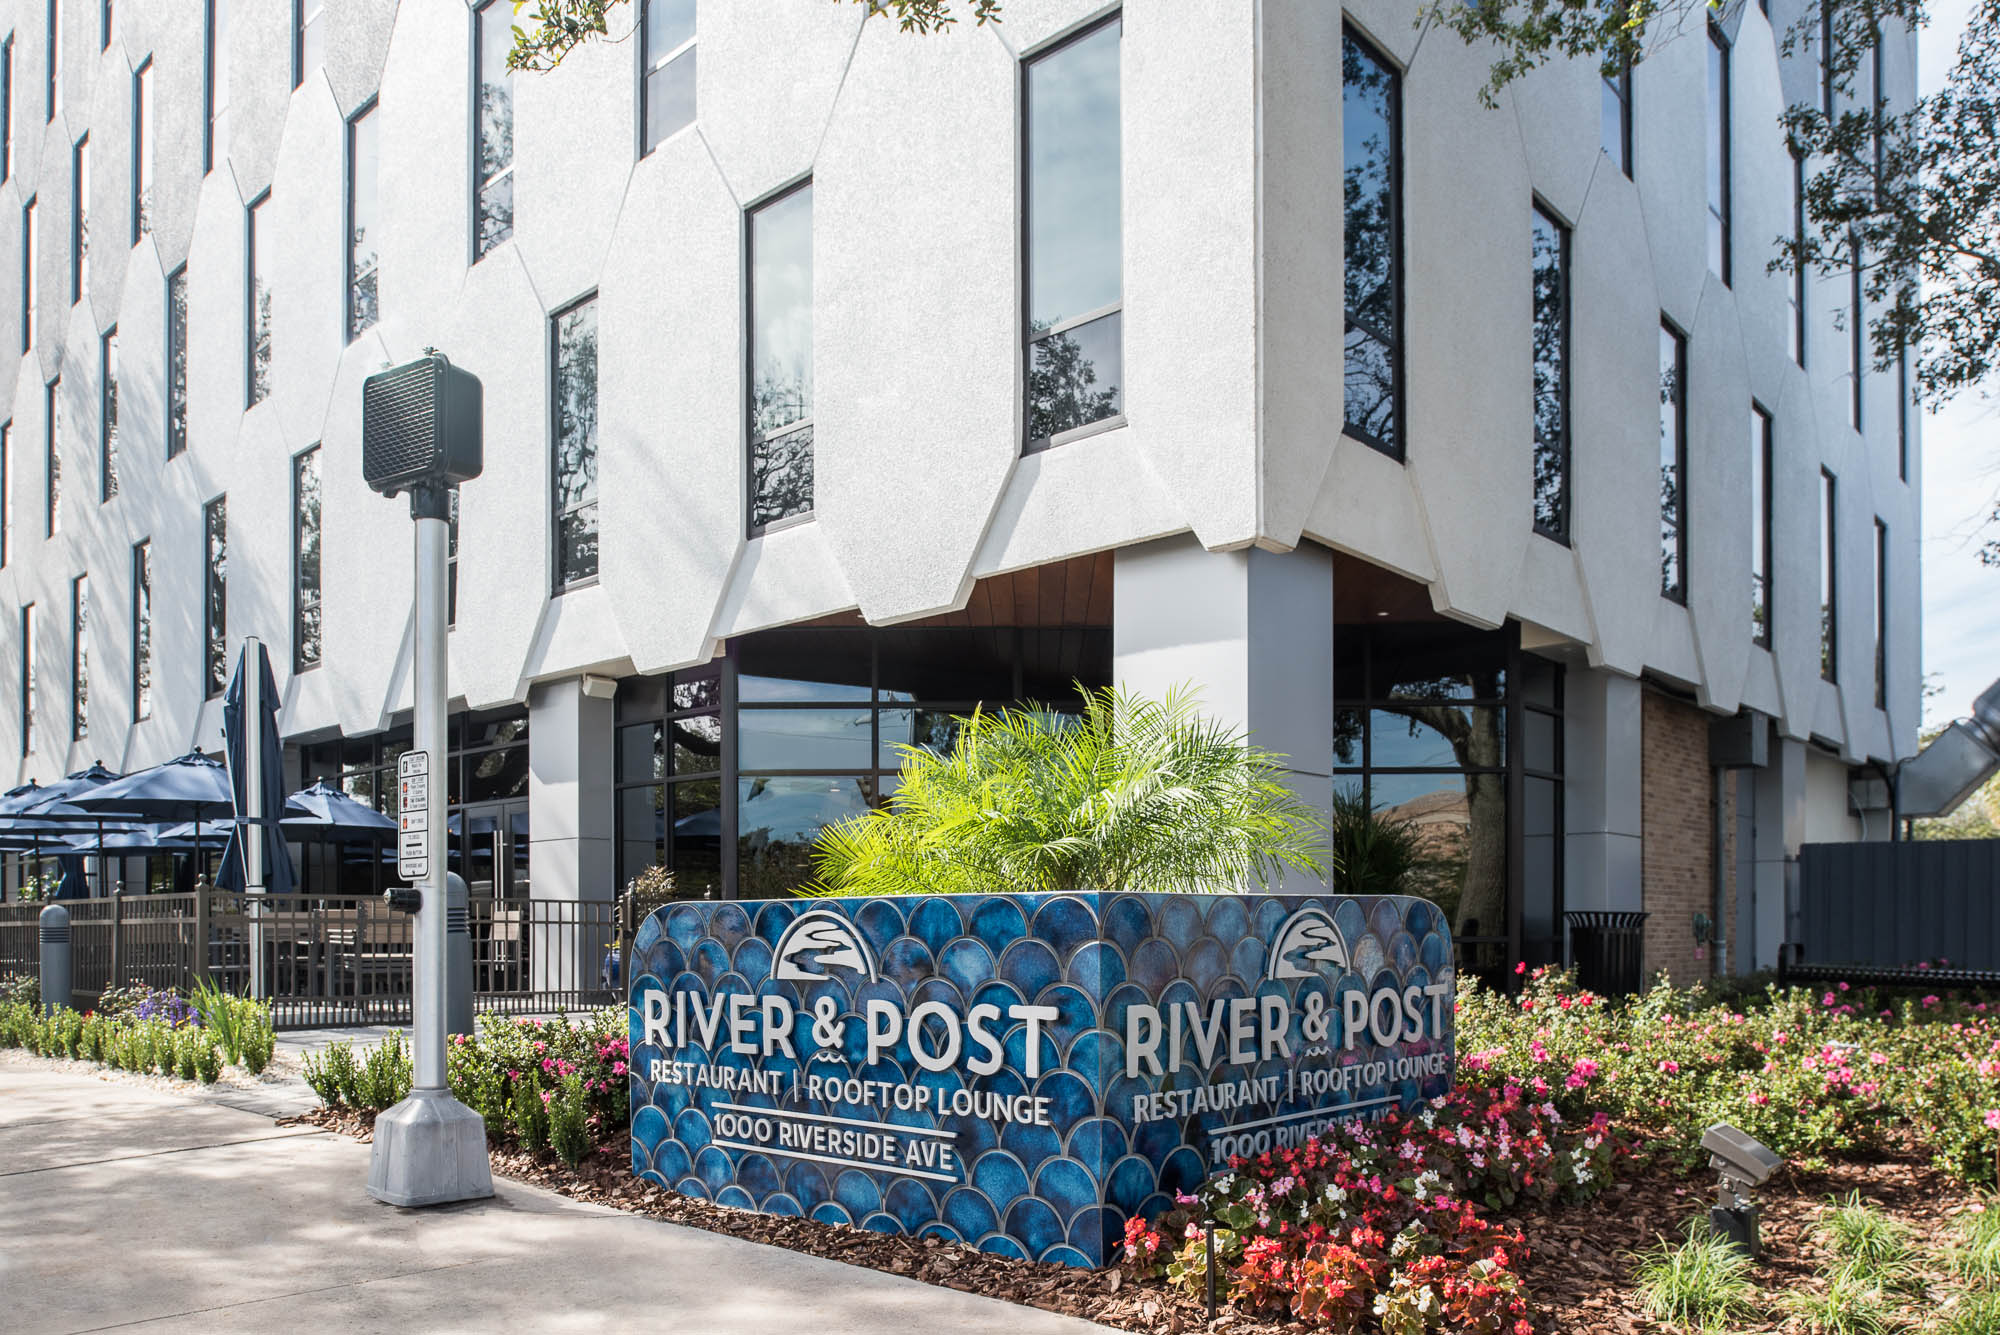 River and Post-Restaurant-Rooftop-Lounge-Jacksonville-Florida-Entry Sign-Entrance-Patio-Facade-Commercial Interior Design.jpg